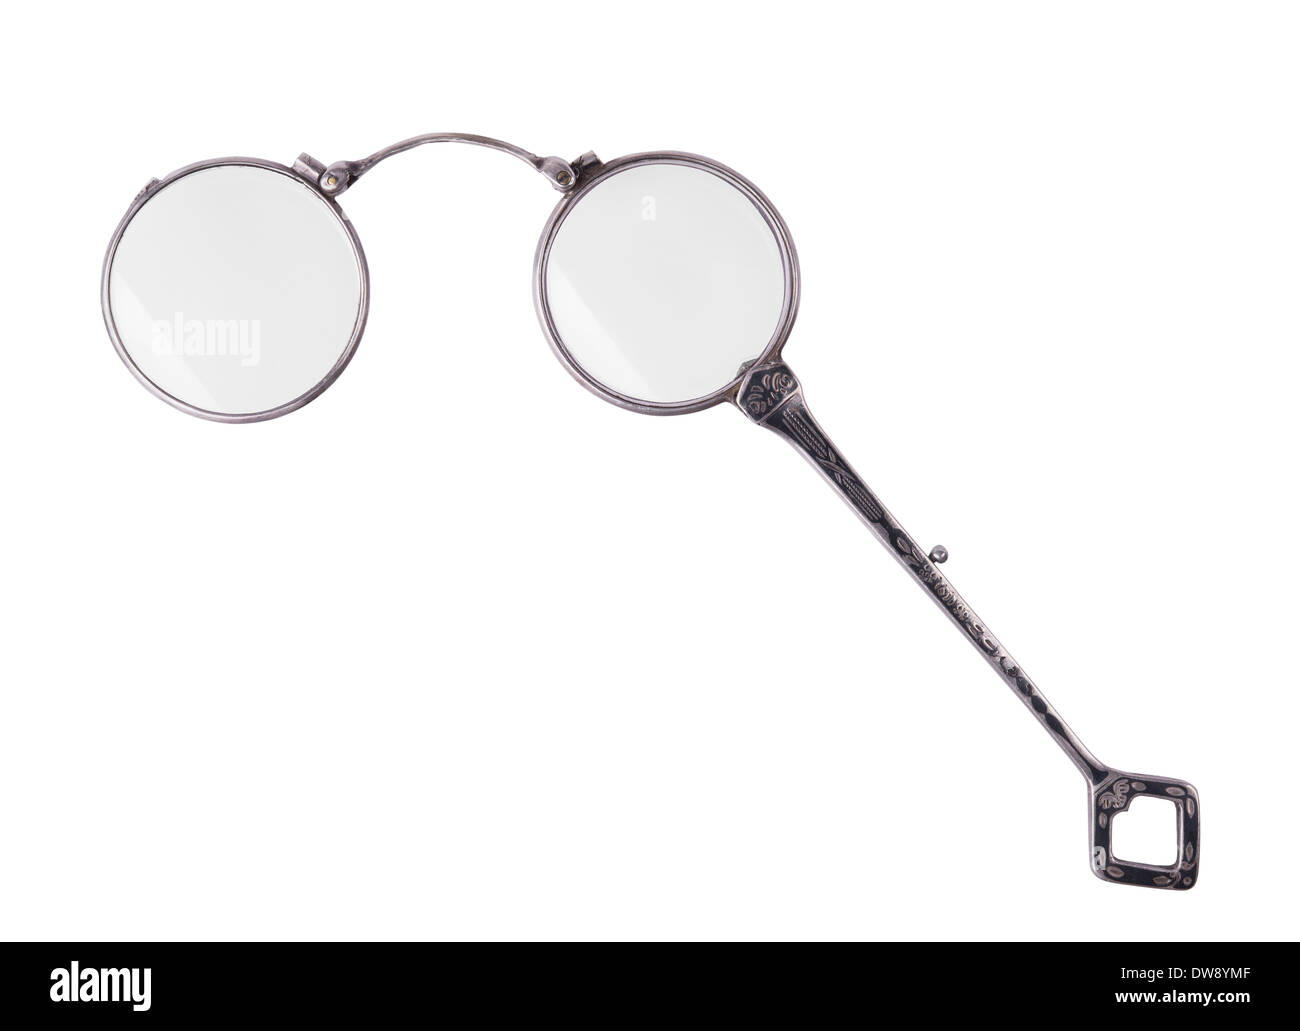 rarity vintage lorgnette isolated on white background - Stock Image